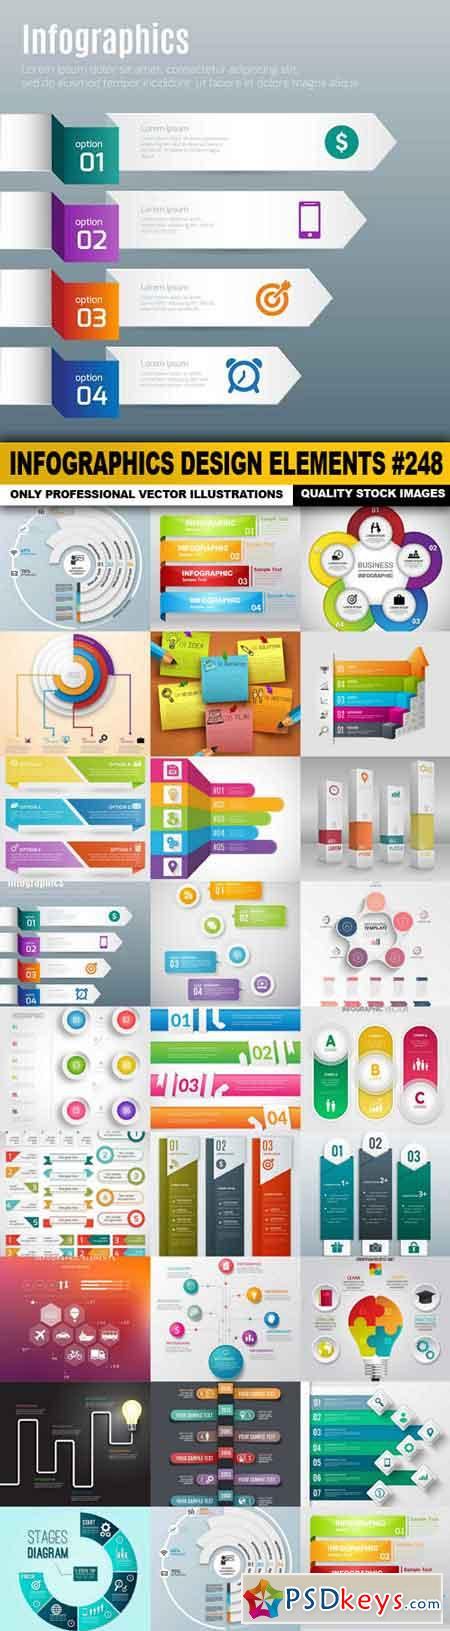 Infographics Design Elements #248 - 25 Vector